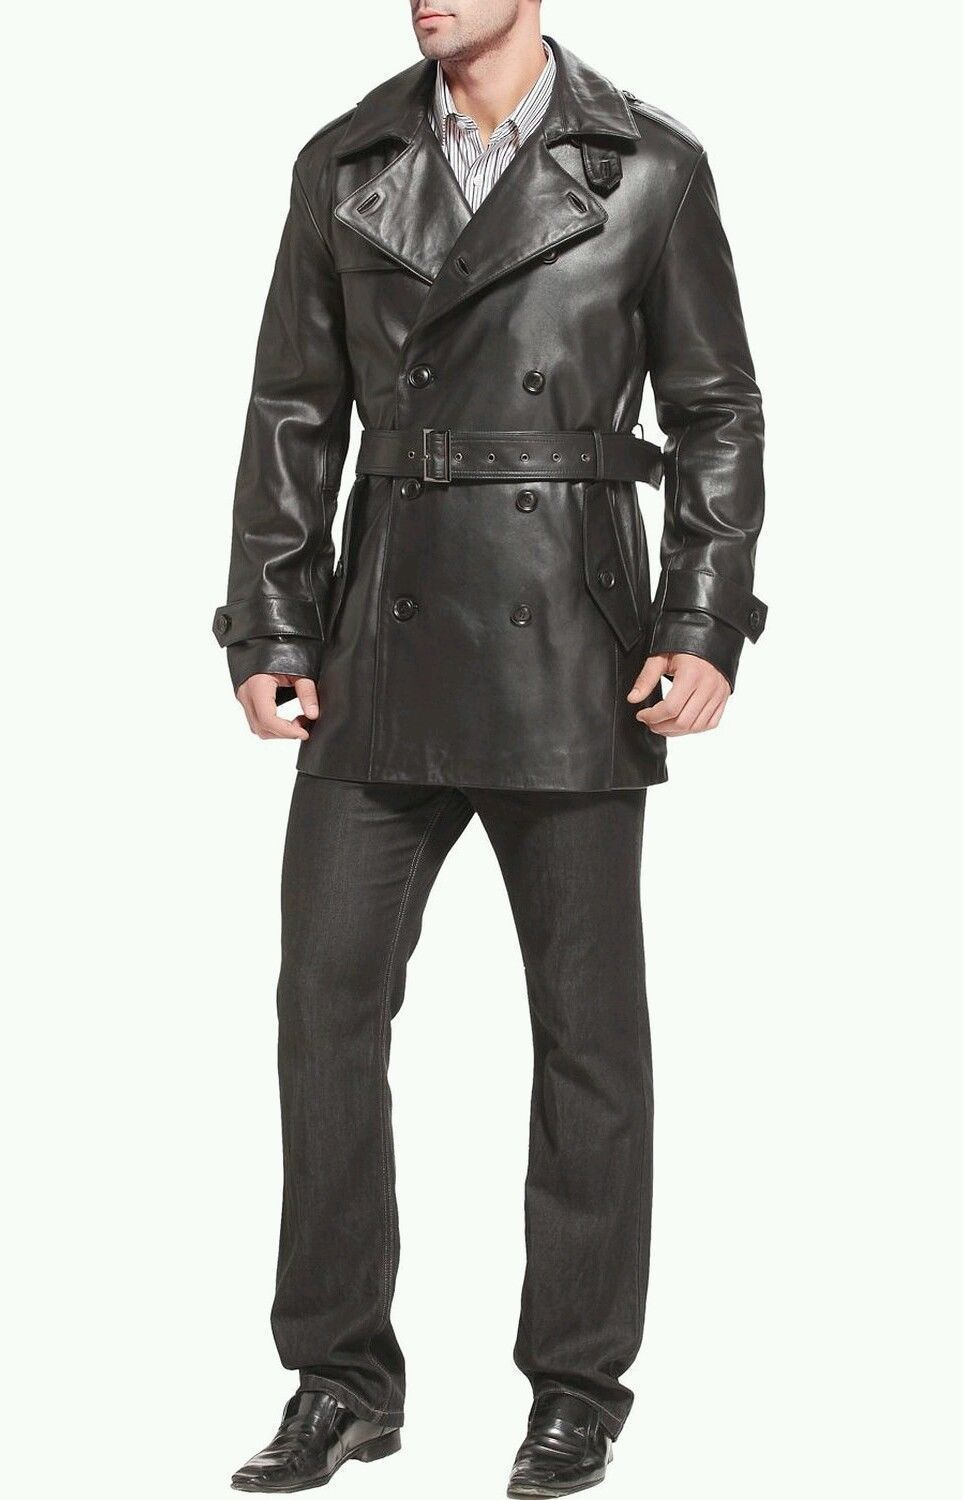 WINTER MEN LEATHER COAT TAILOR MADE REAL GENUINE LEATHER TRENCH COAT -19